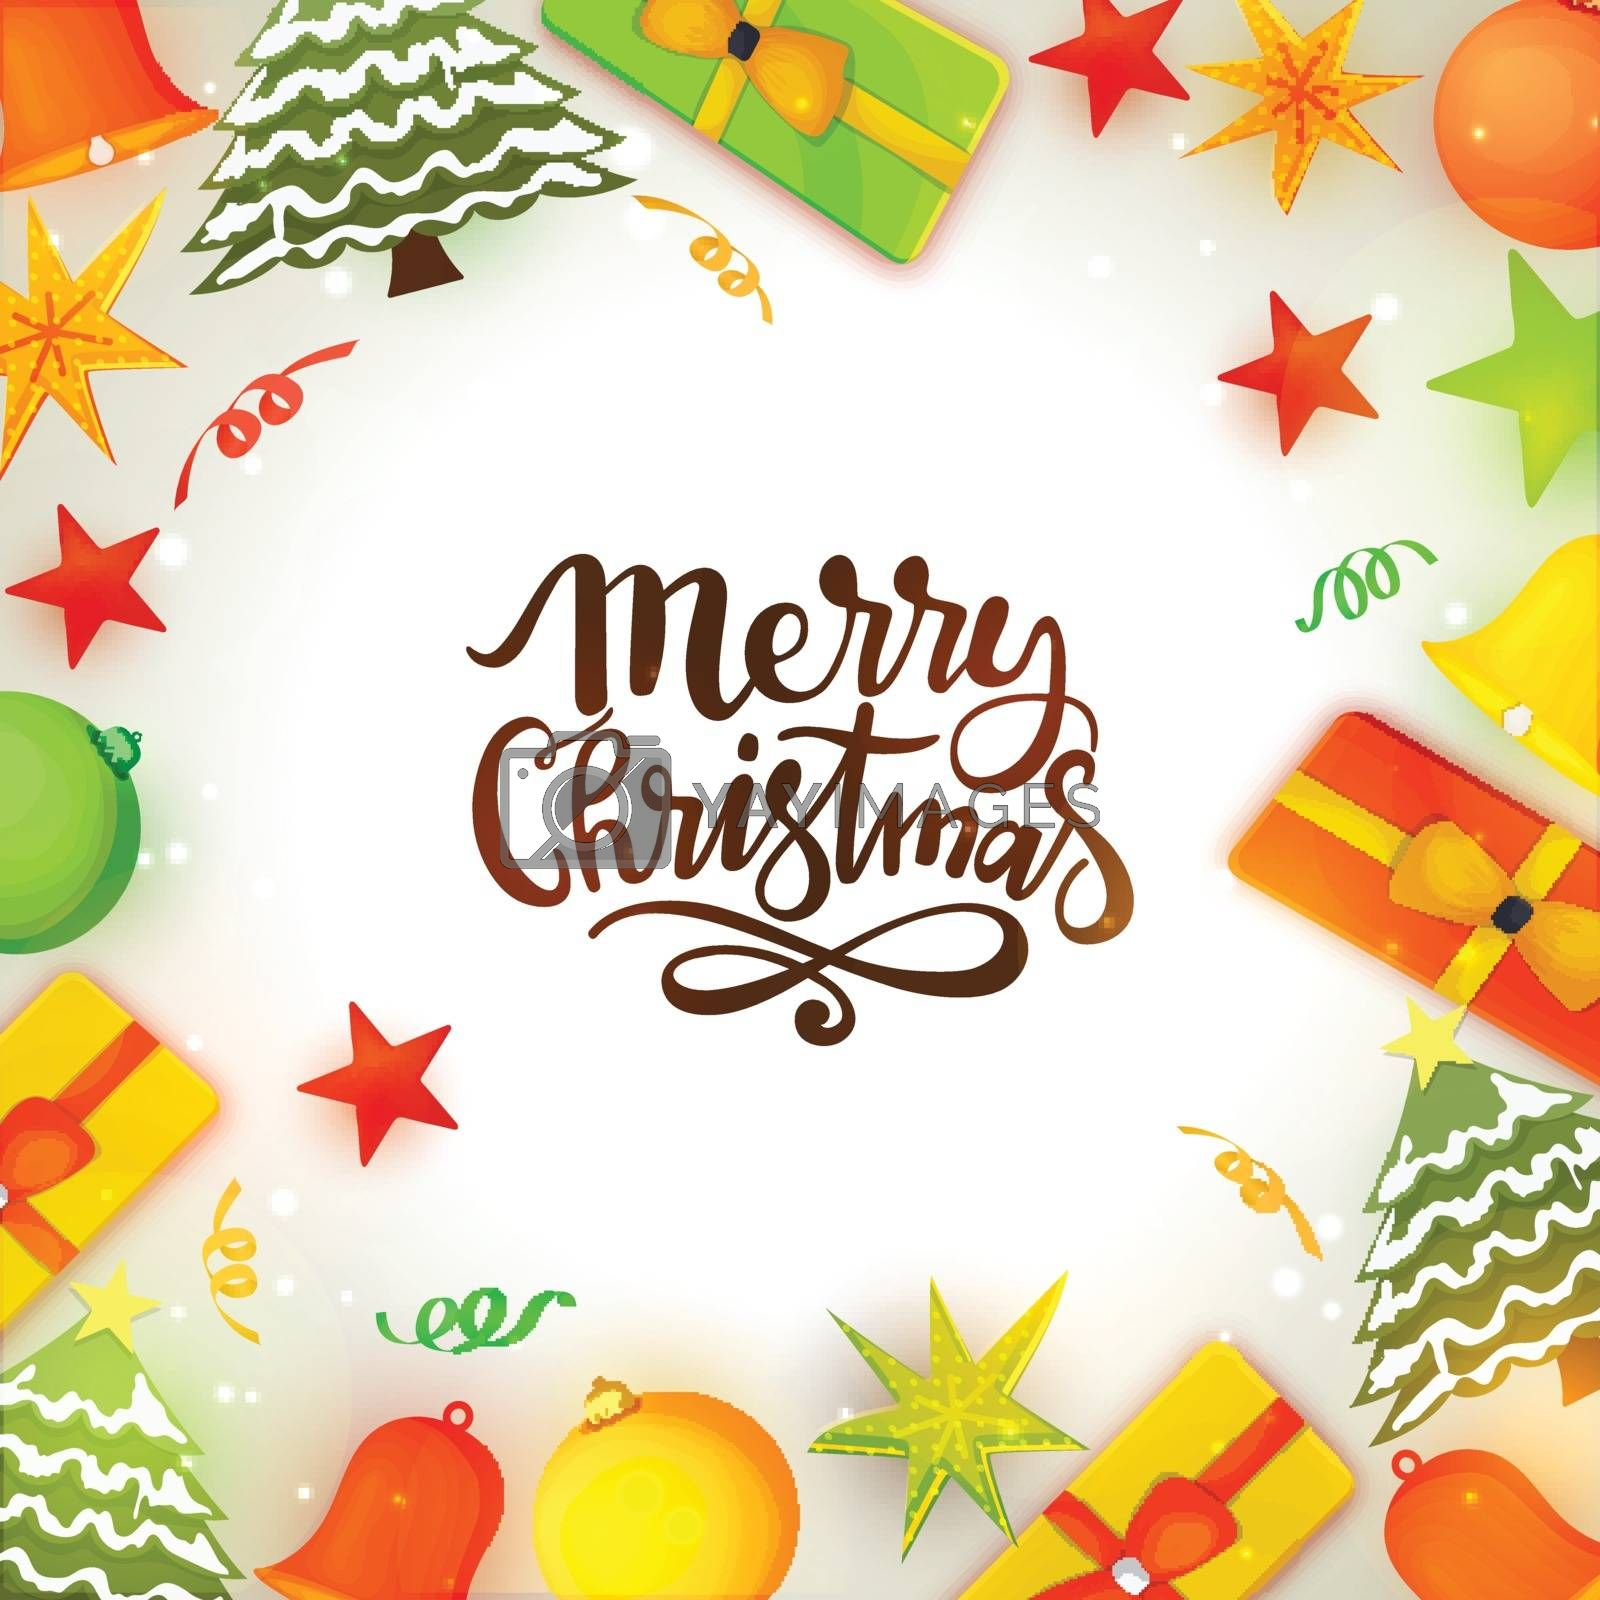 Merry Christmas celebration background with xmas trees, stars, balls, gifts and jingle bells decoration.